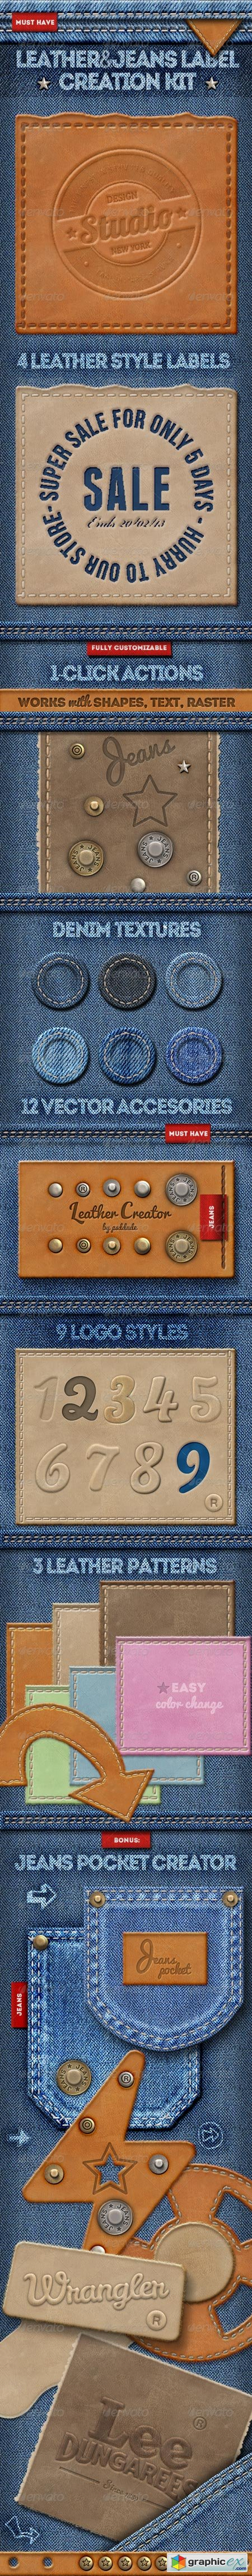 Leather Jeans Label Photoshop Creator 8624339